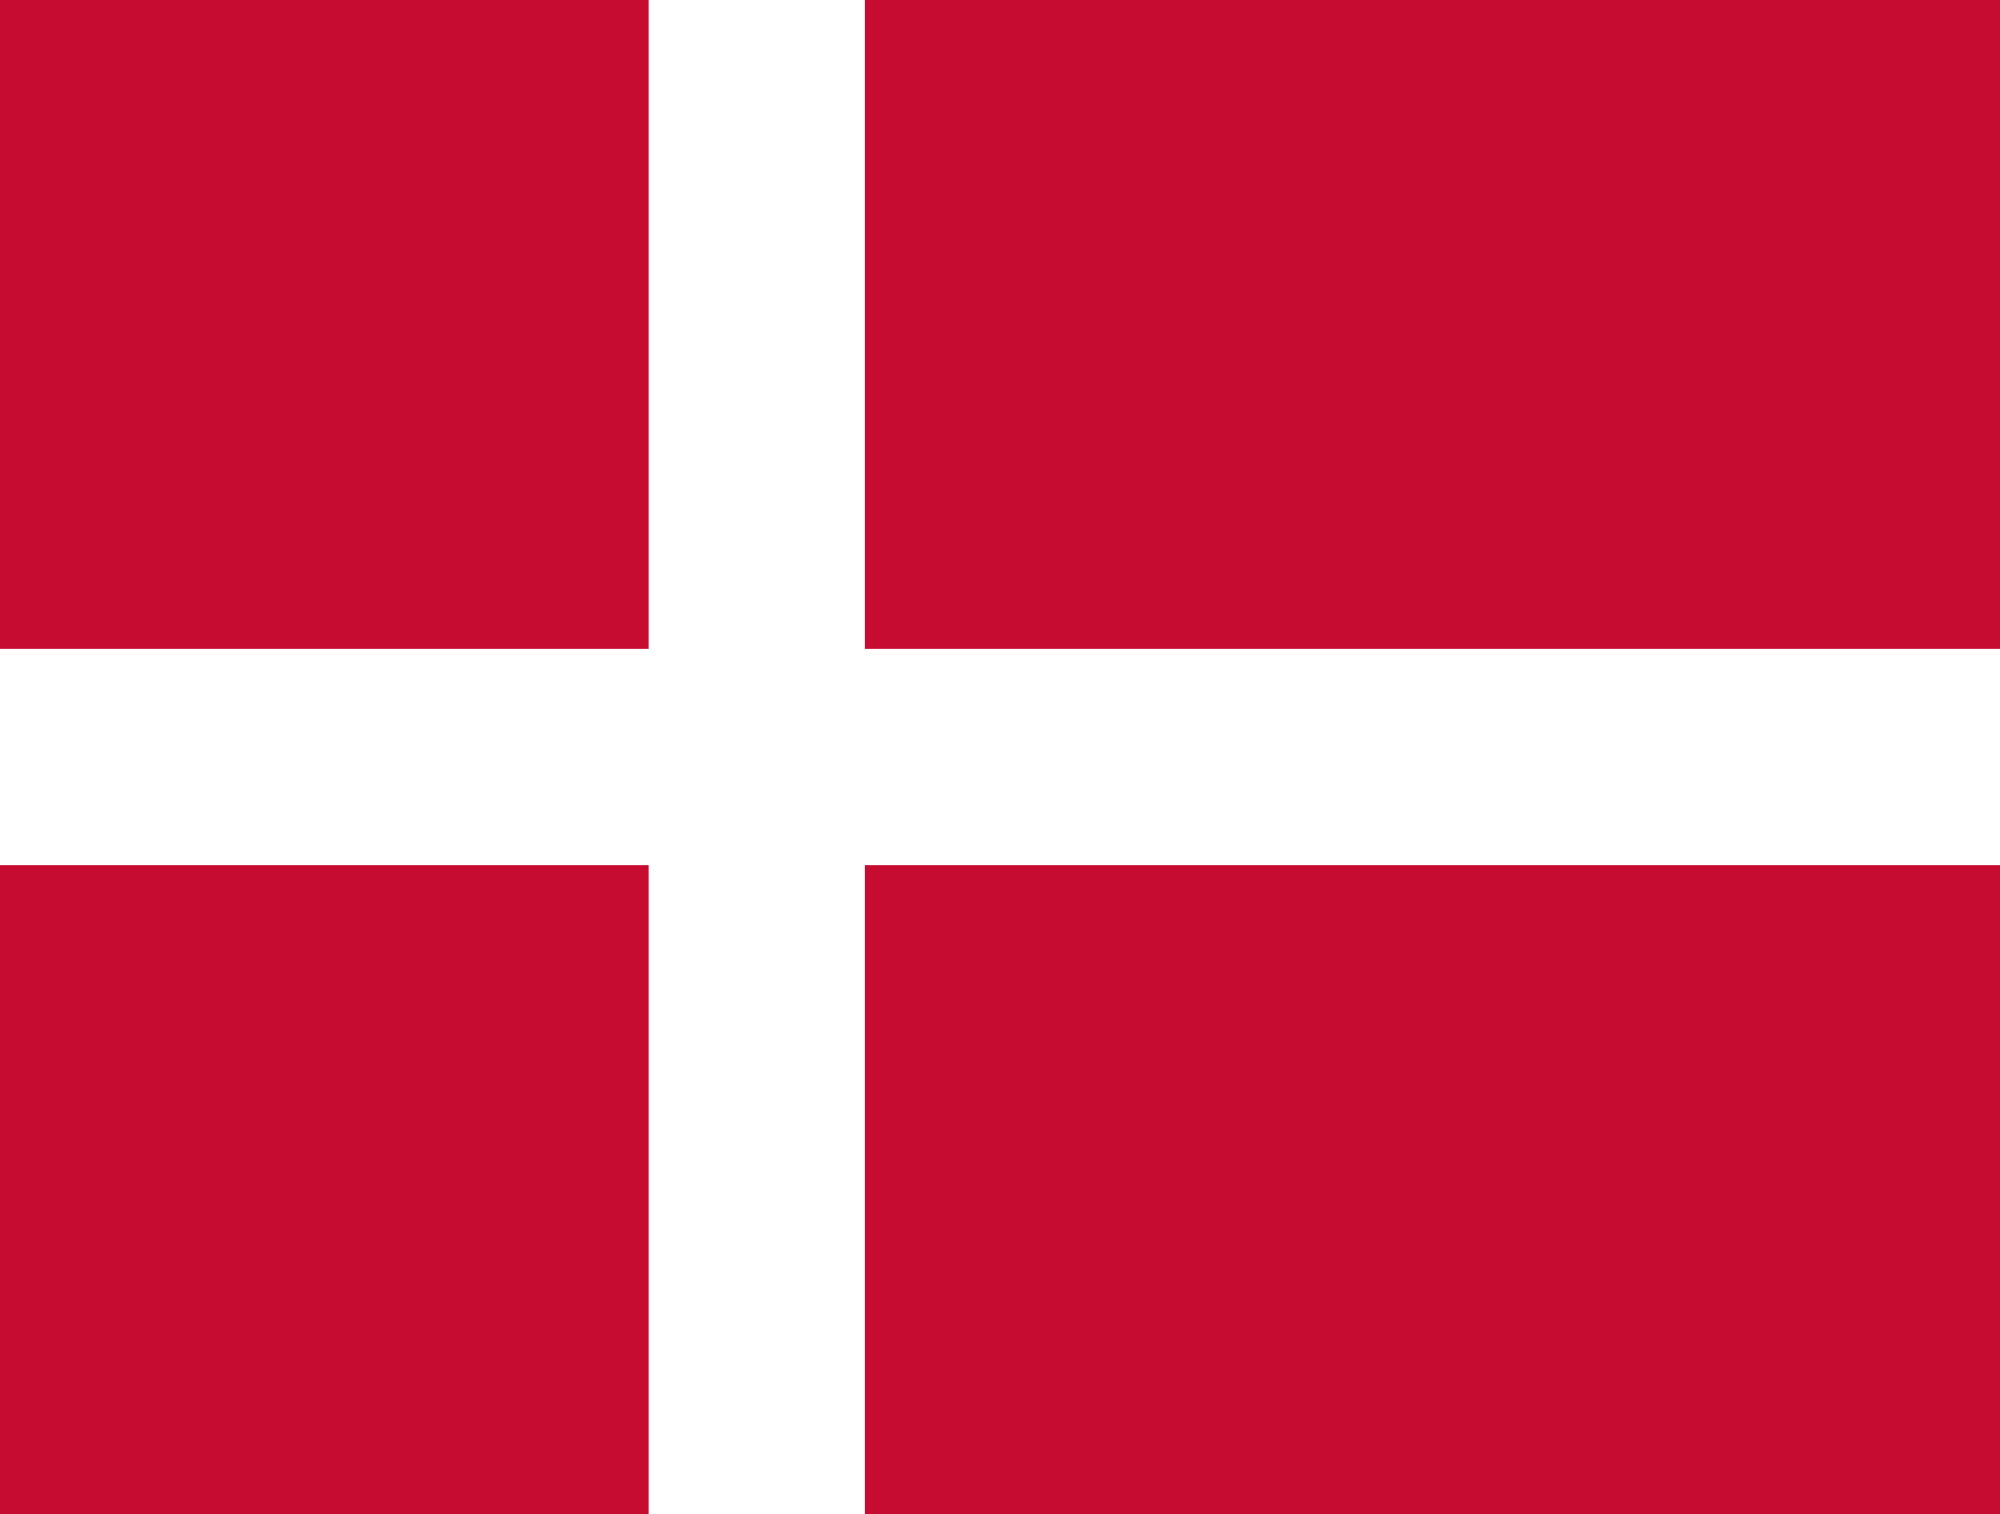 Denmark svg #20, Download drawings